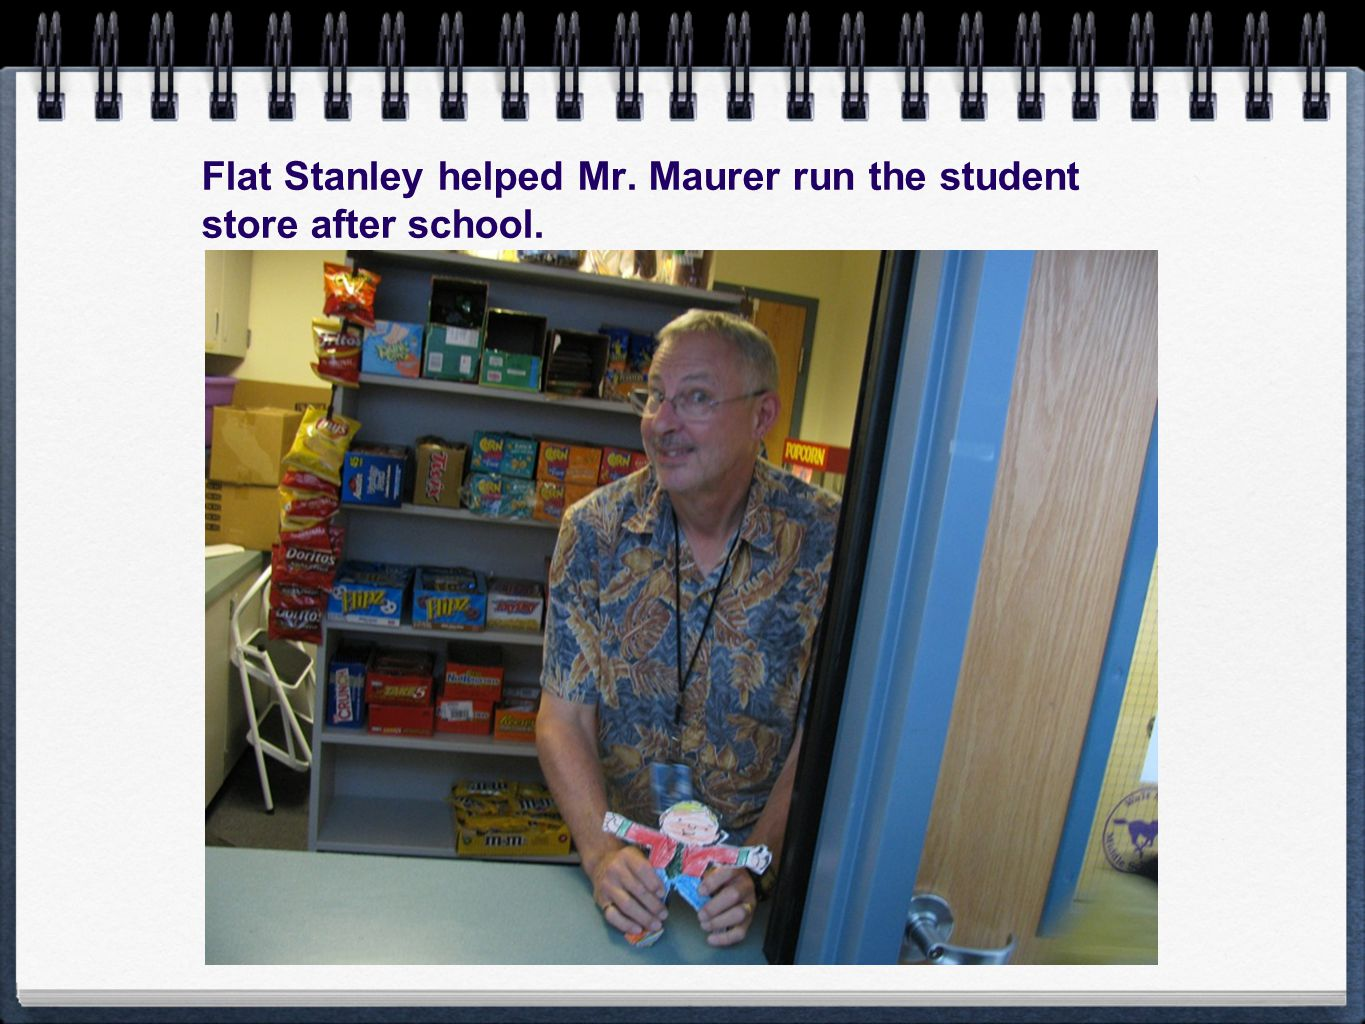 Flat Stanley helped Mr. Maurer run the student store after school.